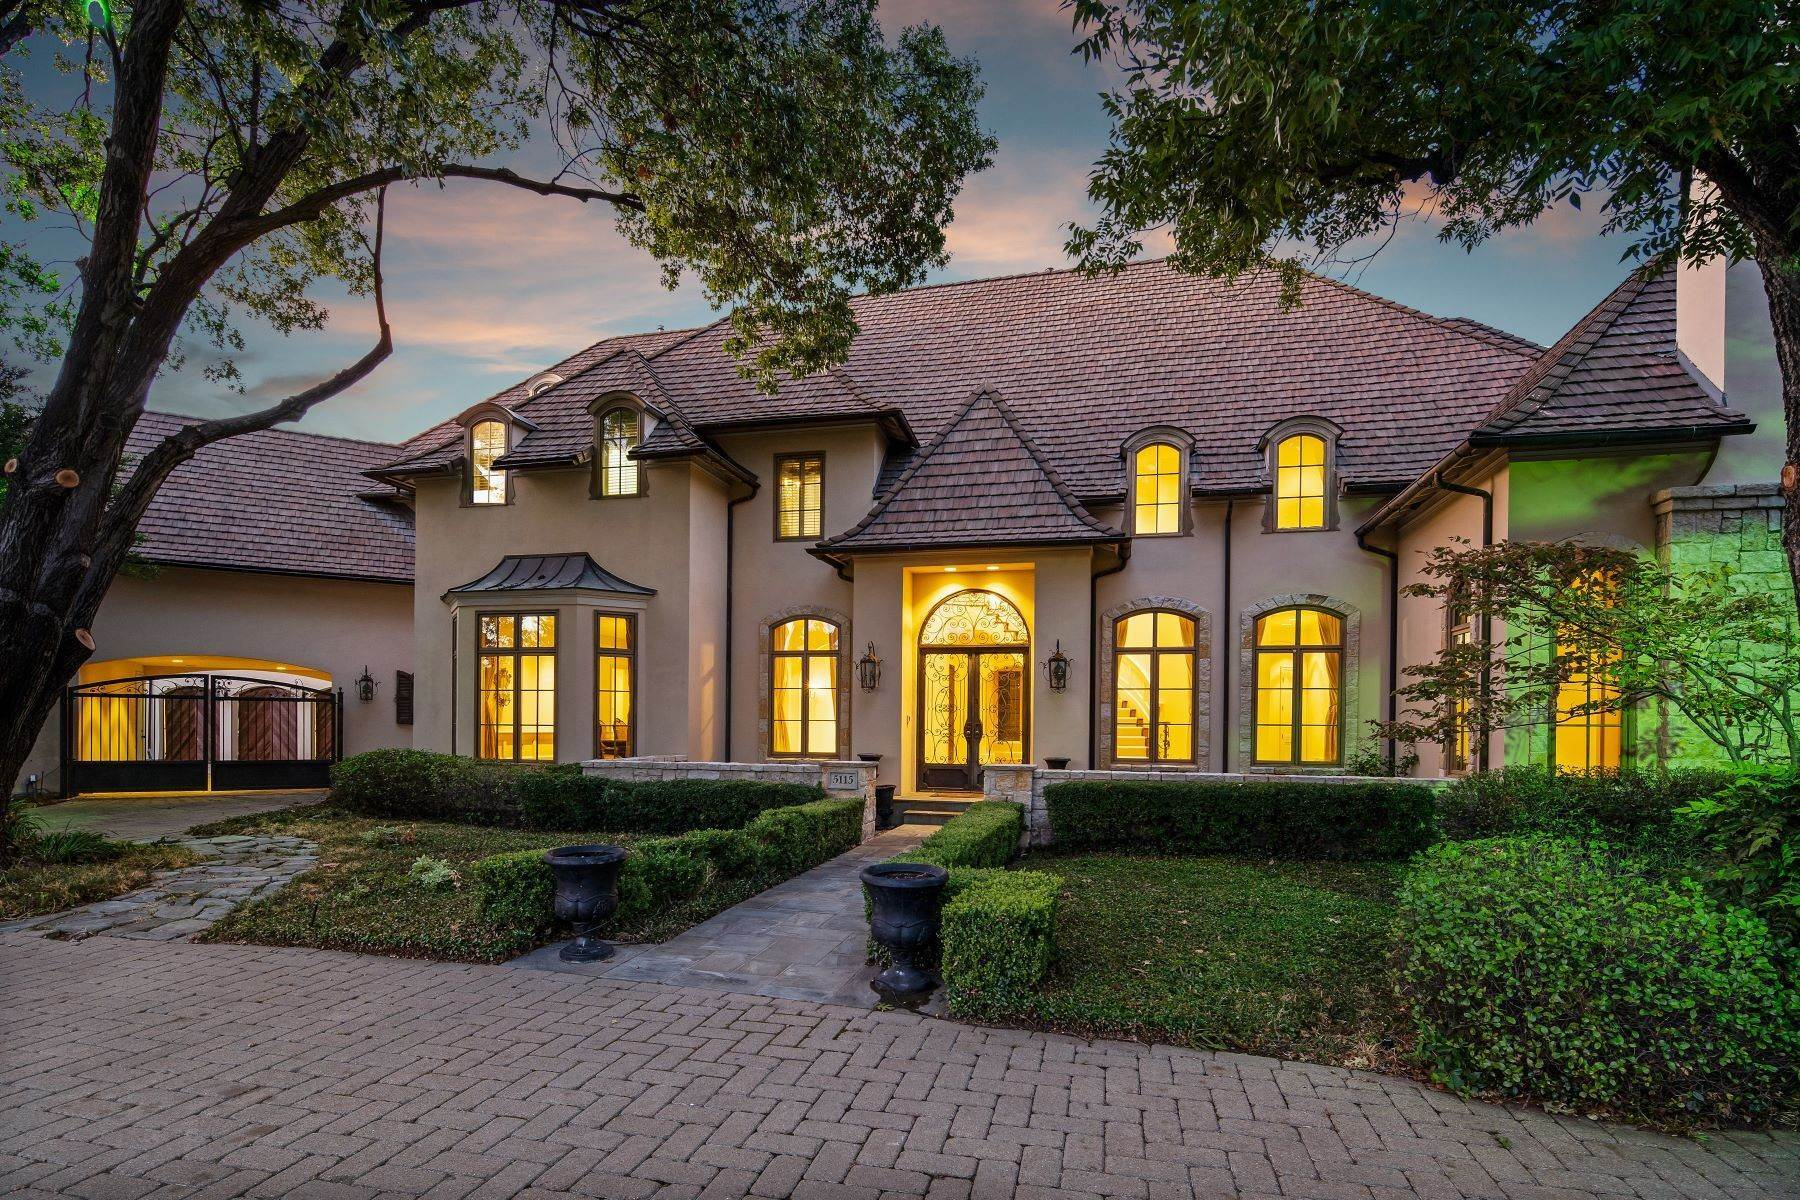 Single Family Homes for Sale at Extraordinary Preston Hollow Estate 5115 Ursula Lane Dallas, Texas 75229 United States